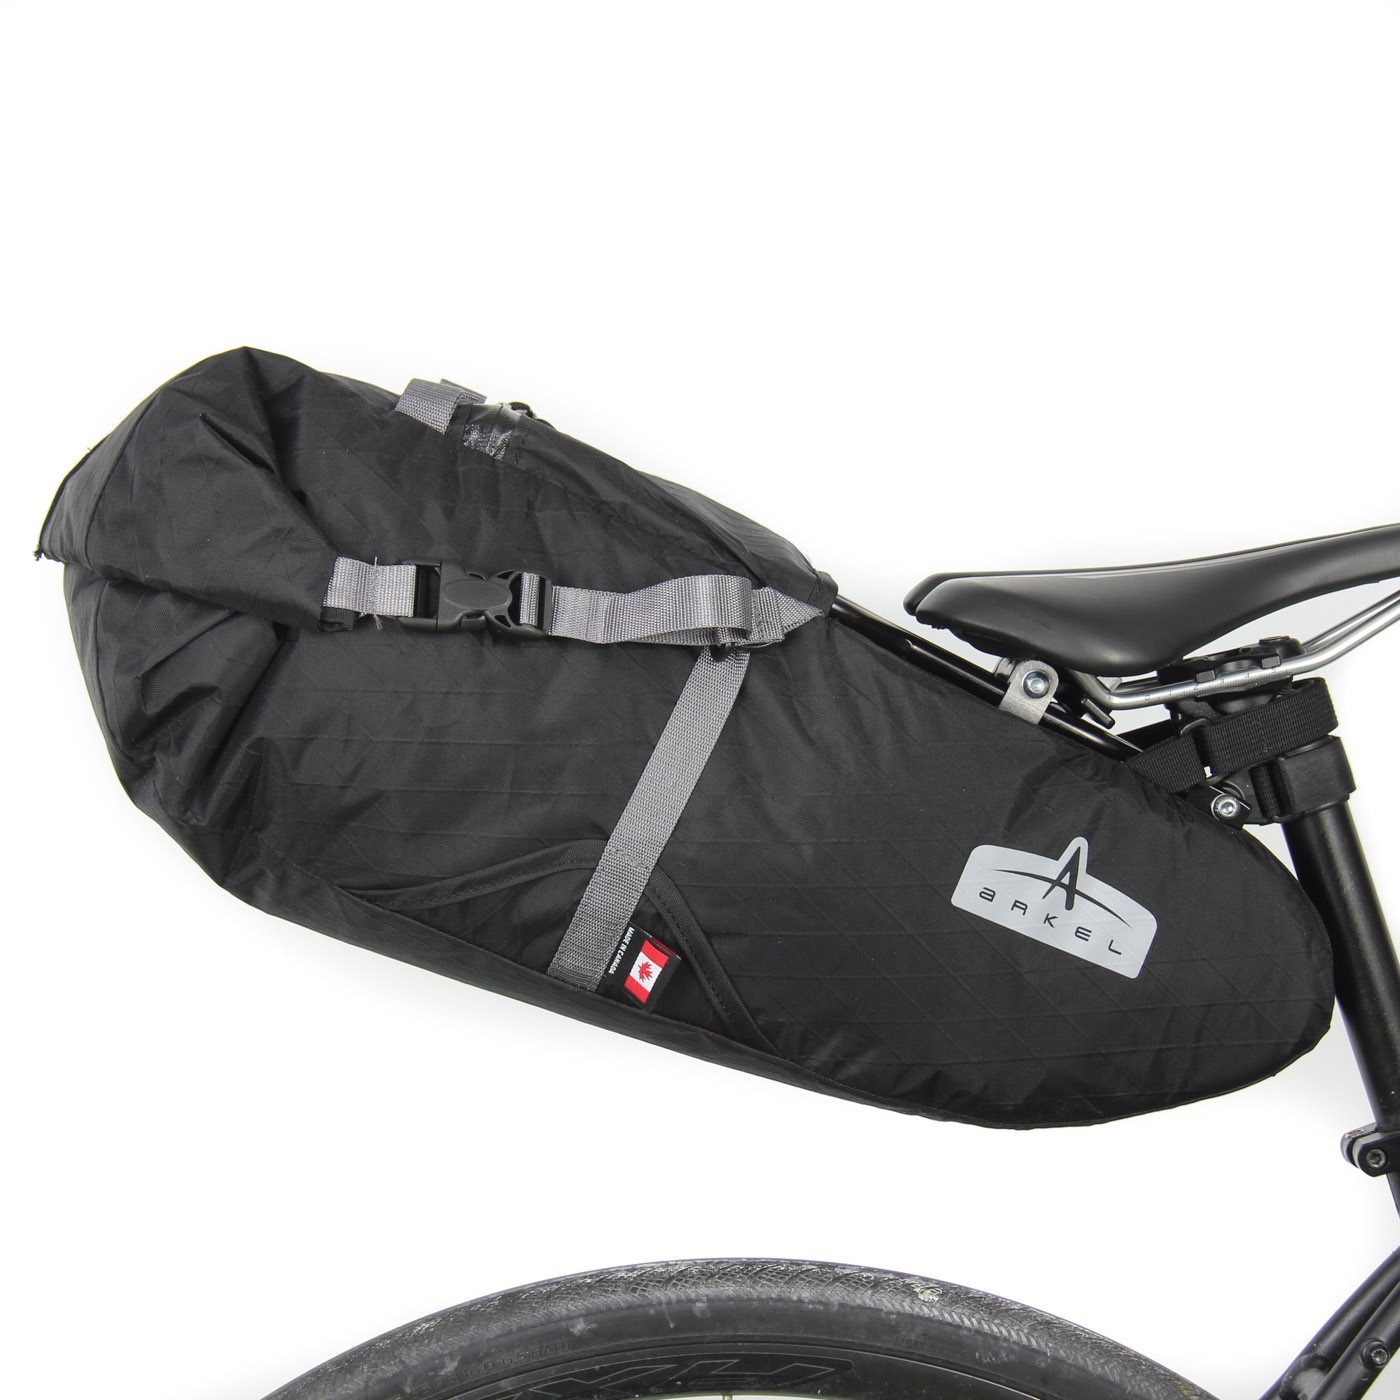 Seatpacker 15 Bikepacking Seat Bag Patent Pending